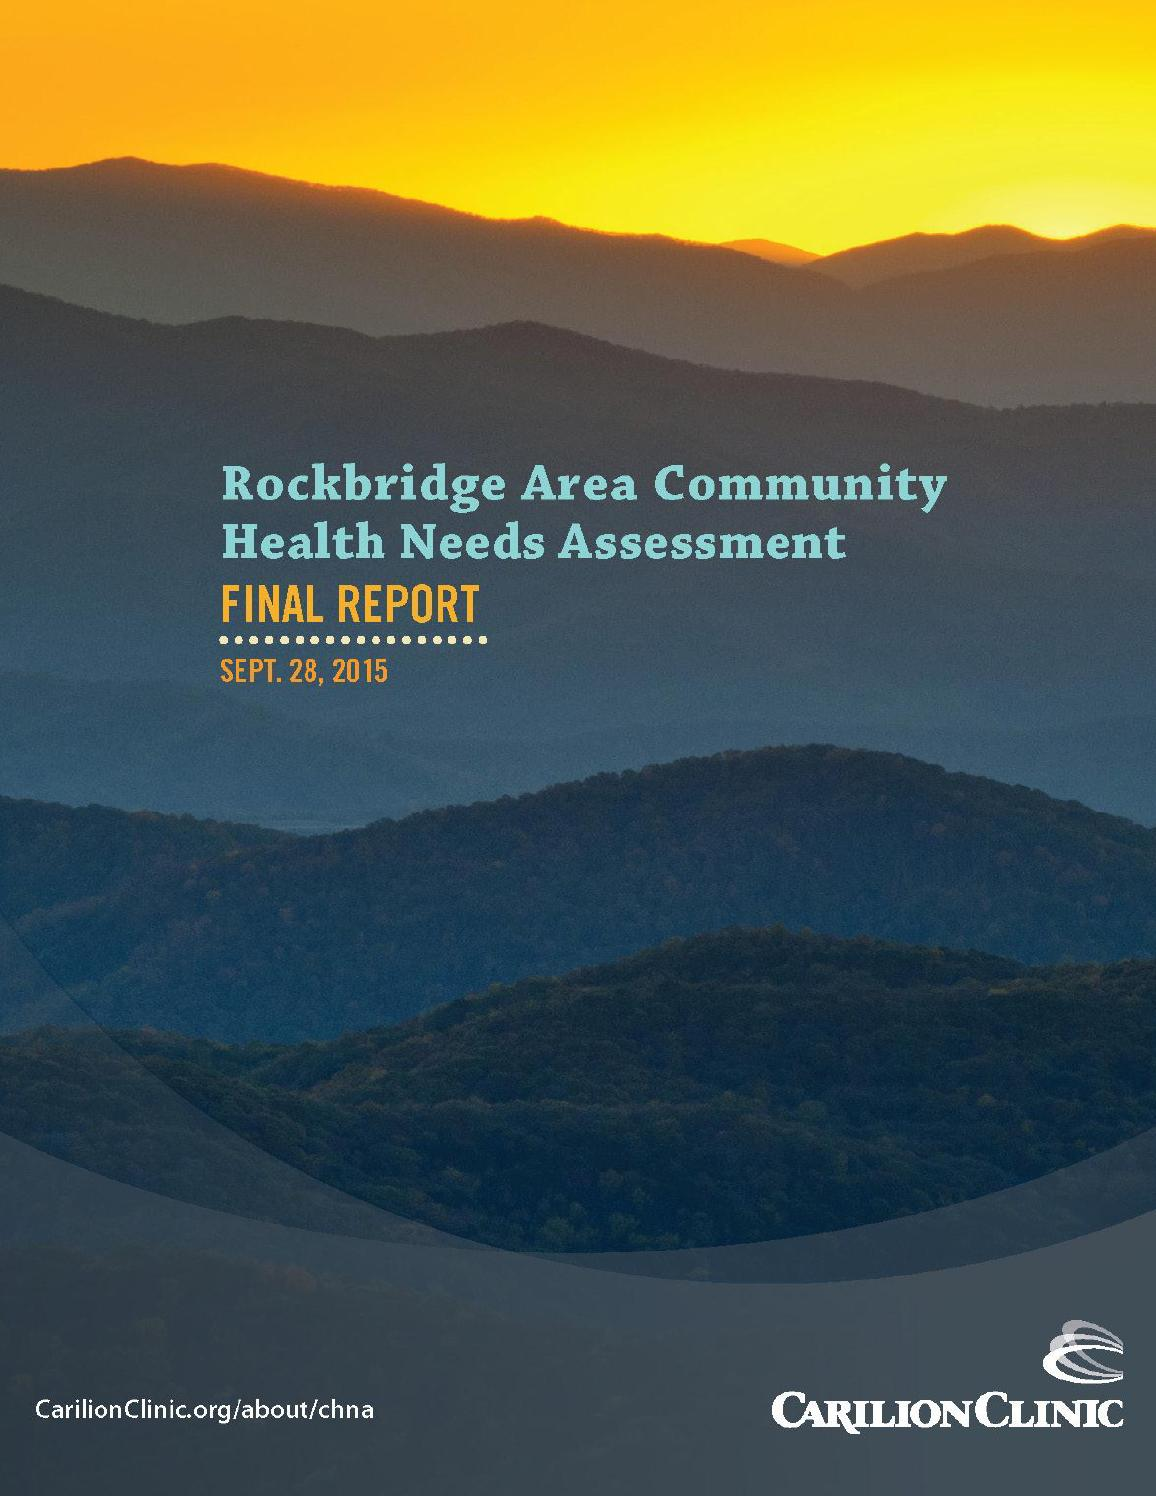 rockbridge area community health needs assessment by carilion clinic  rockbridge area community health needs assessment by carilion clinic  issuu